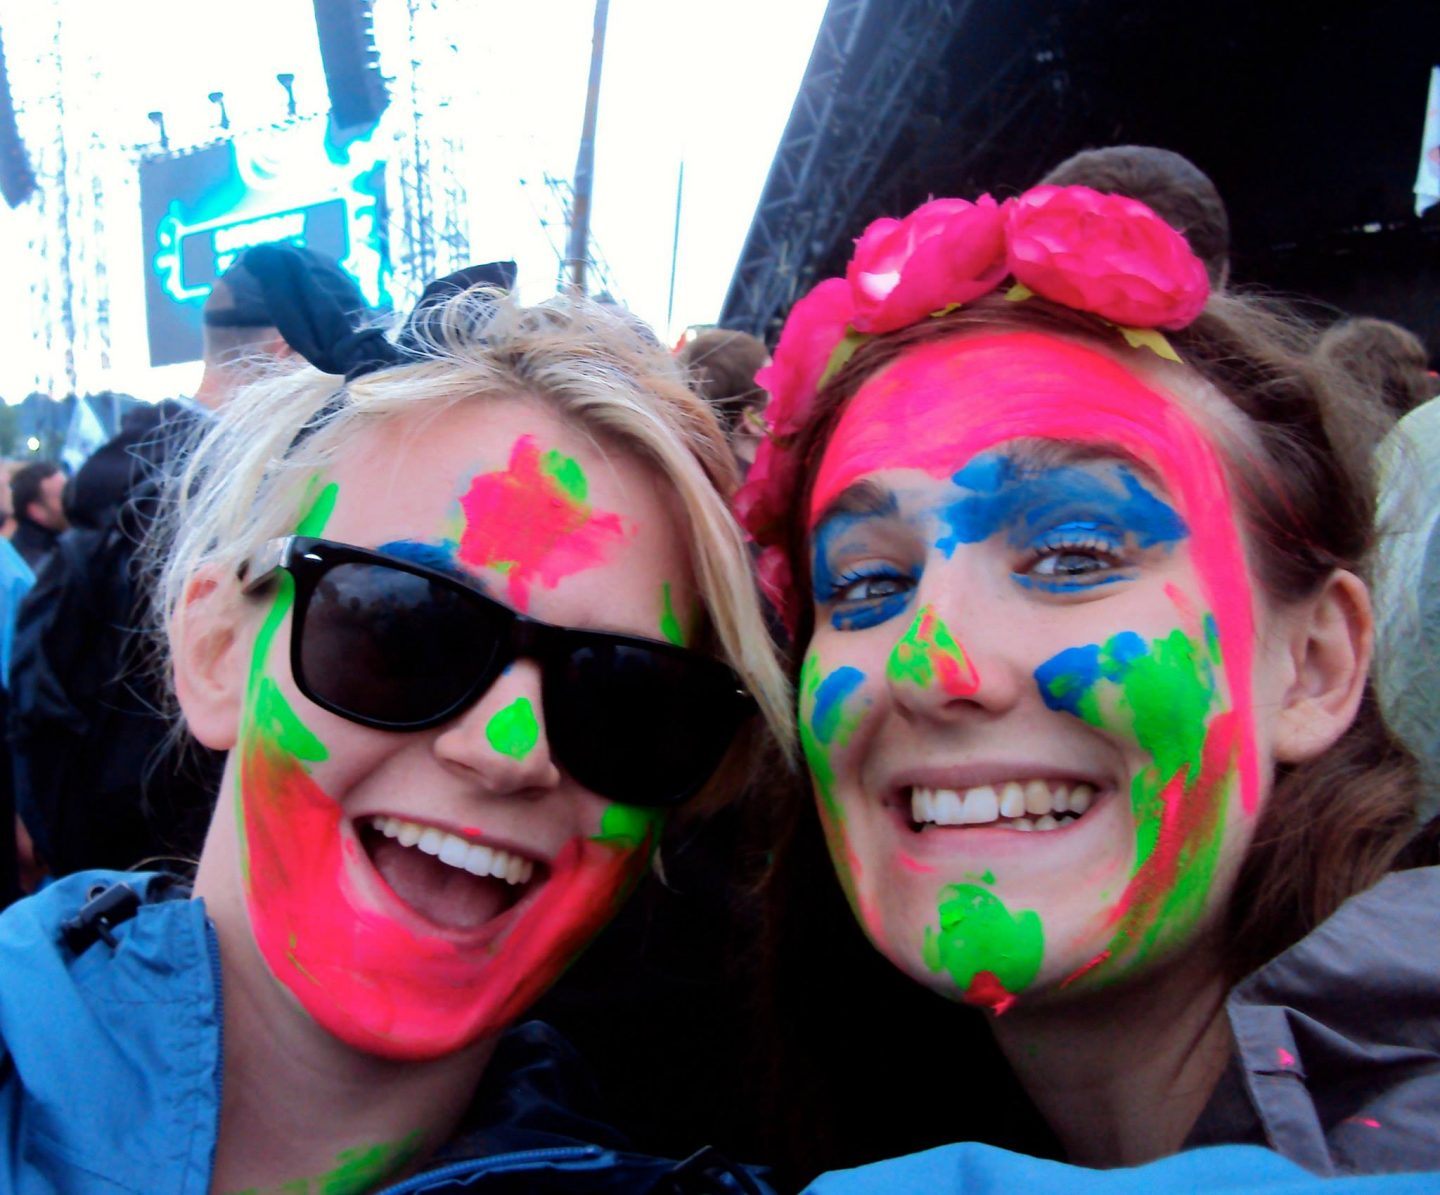 Girls with face paints in the crowd